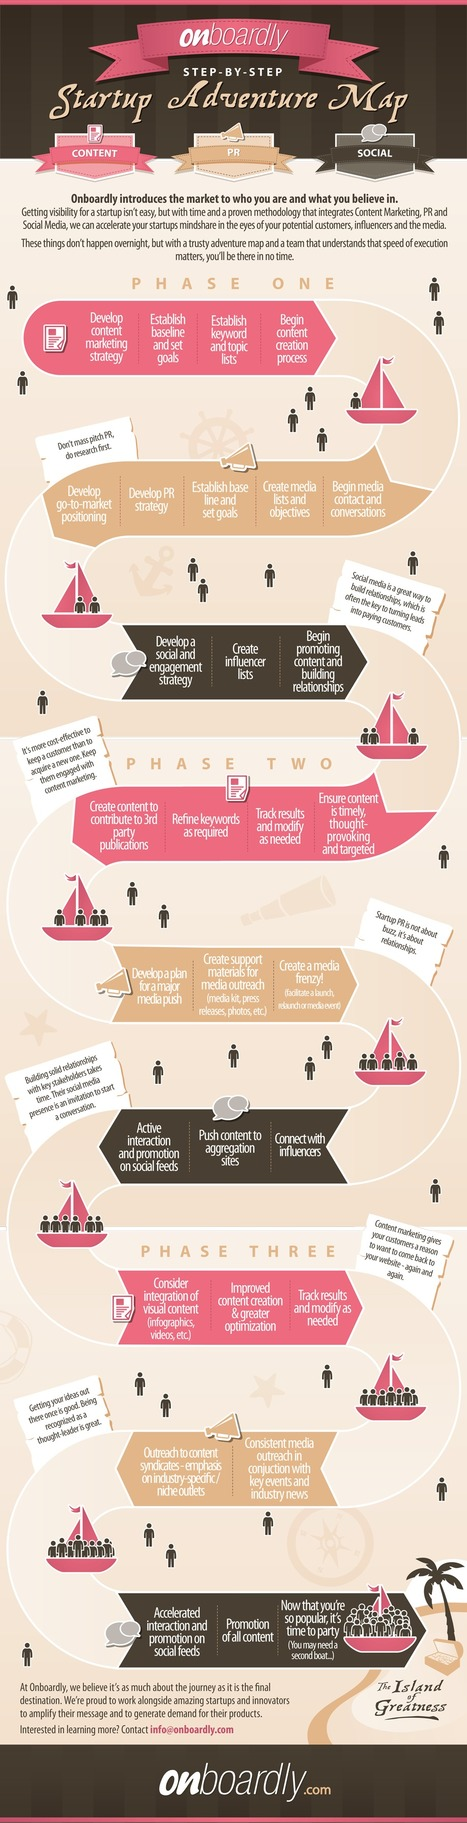 Steps On How to Acquire Customers For Your Startup [INFOGRAPHIC] | | MarketingHits | Scoop.it